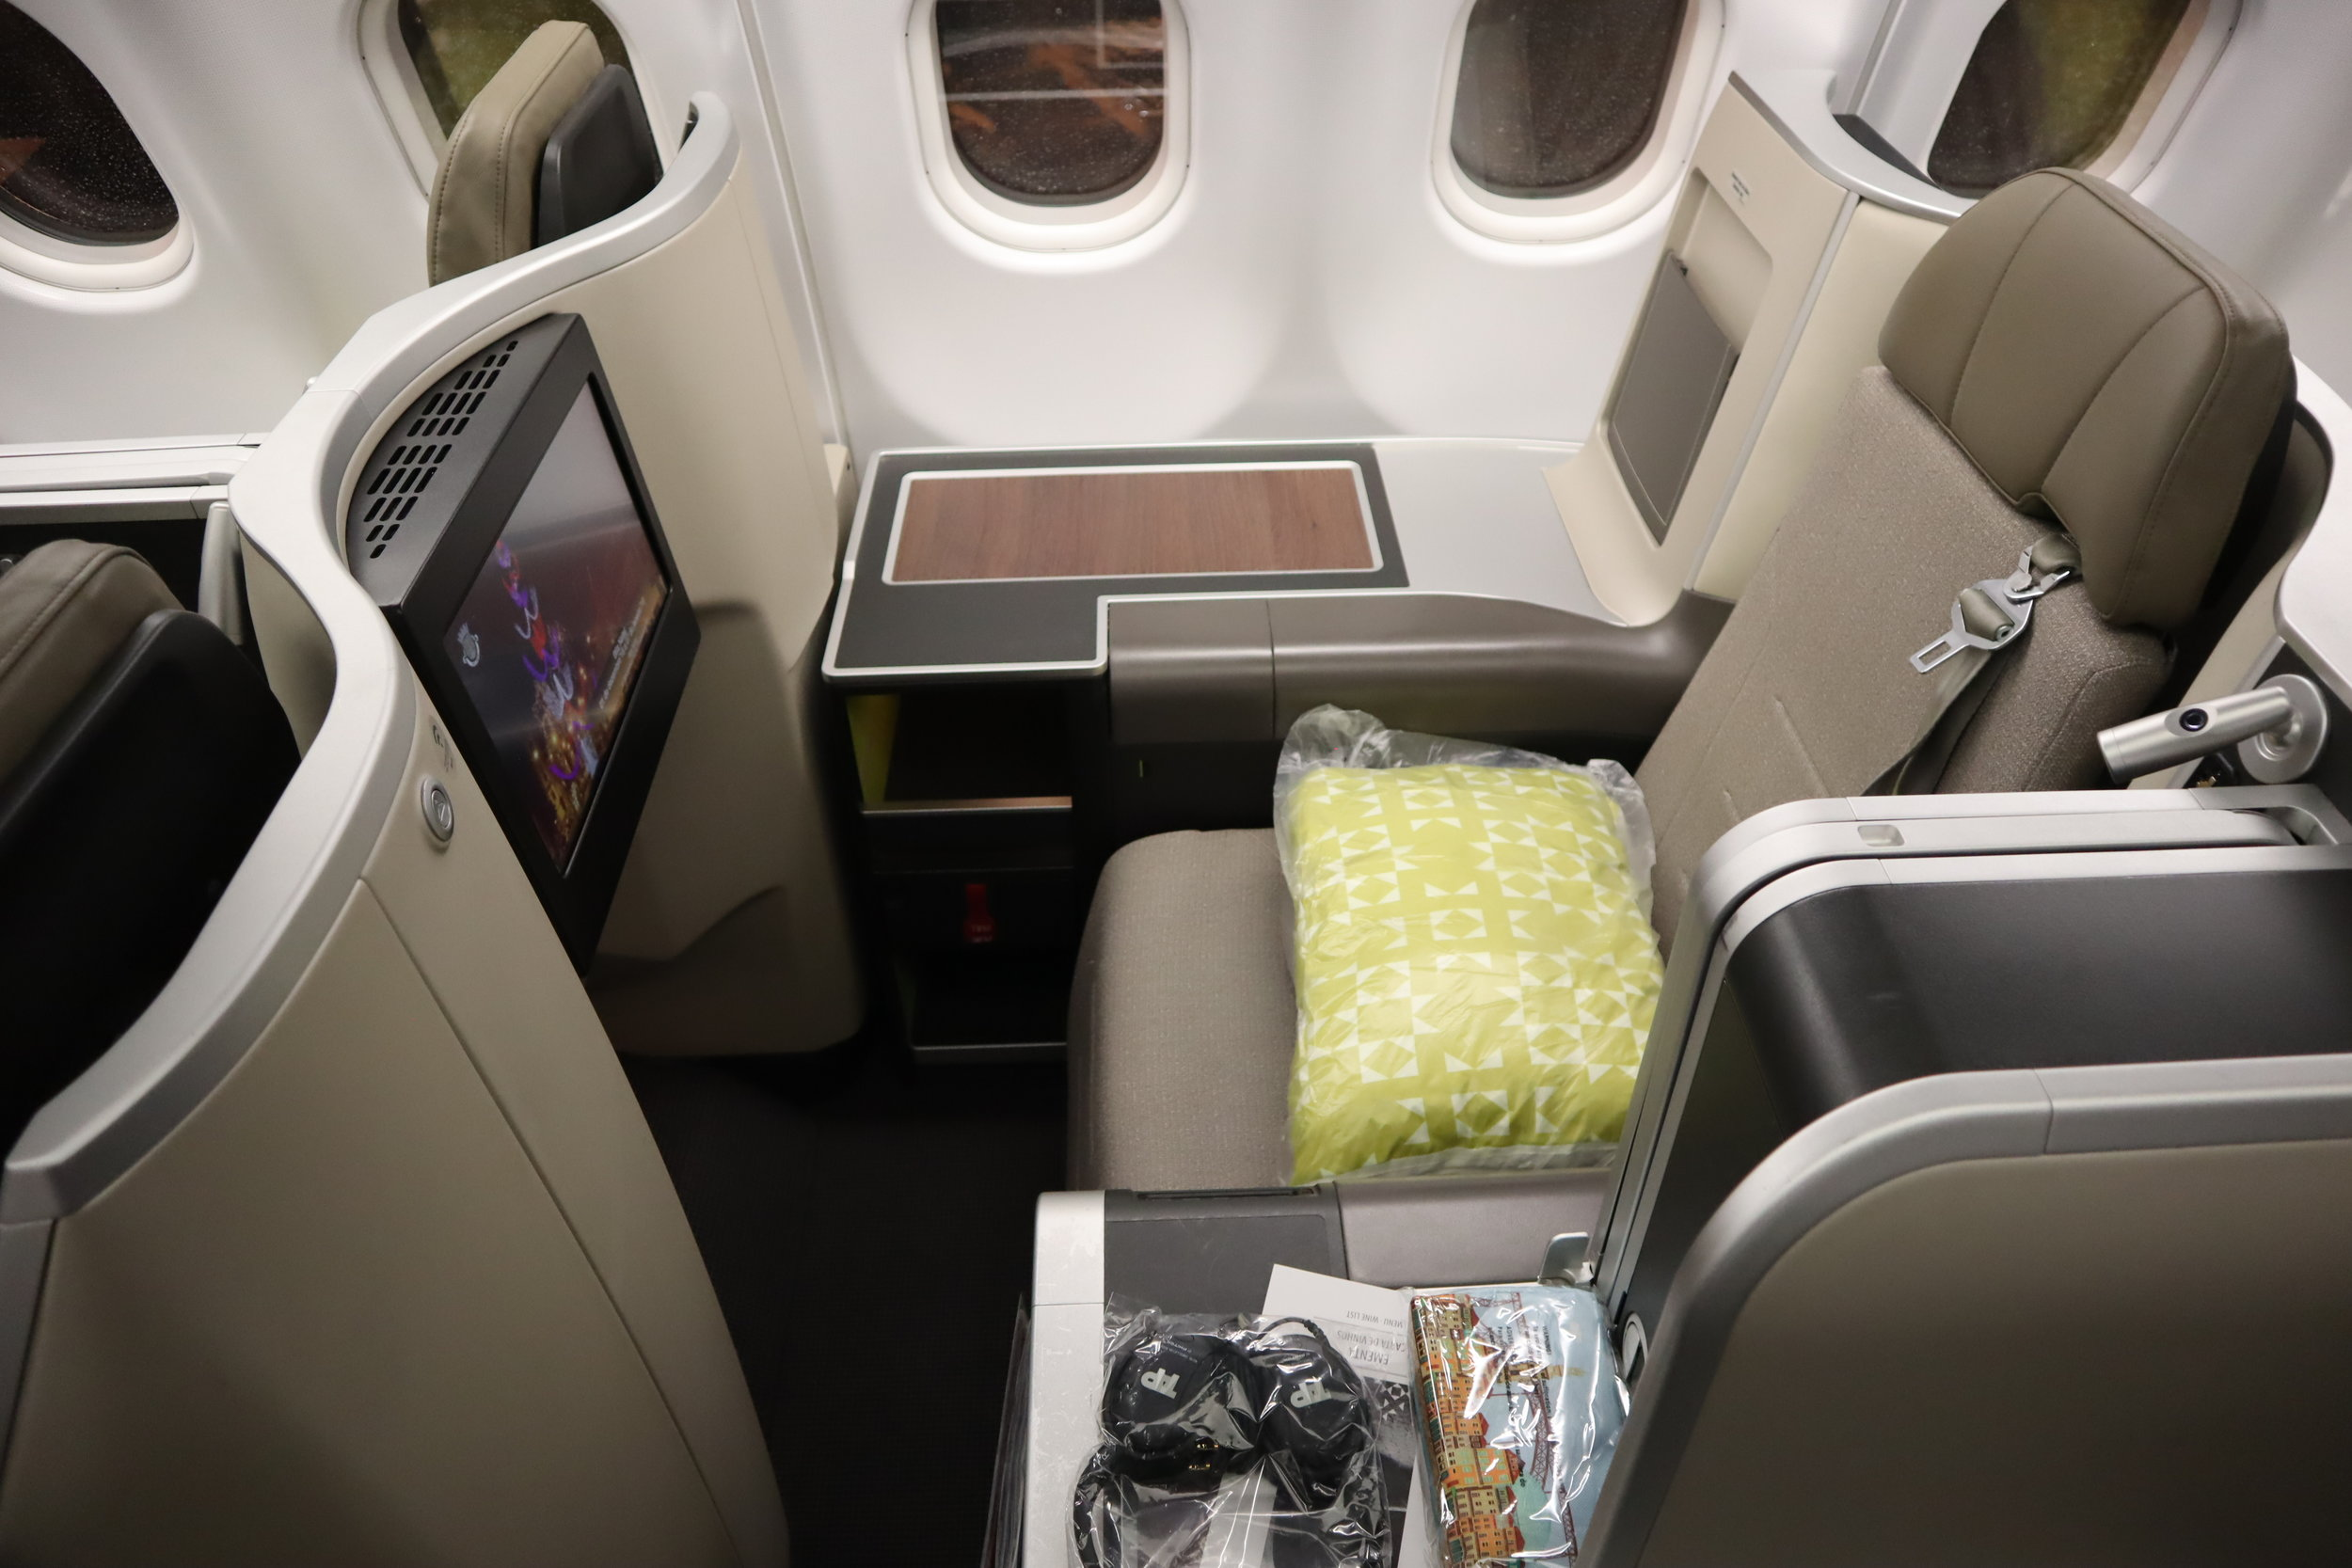 TAP Air Portugal business class – Throne seat